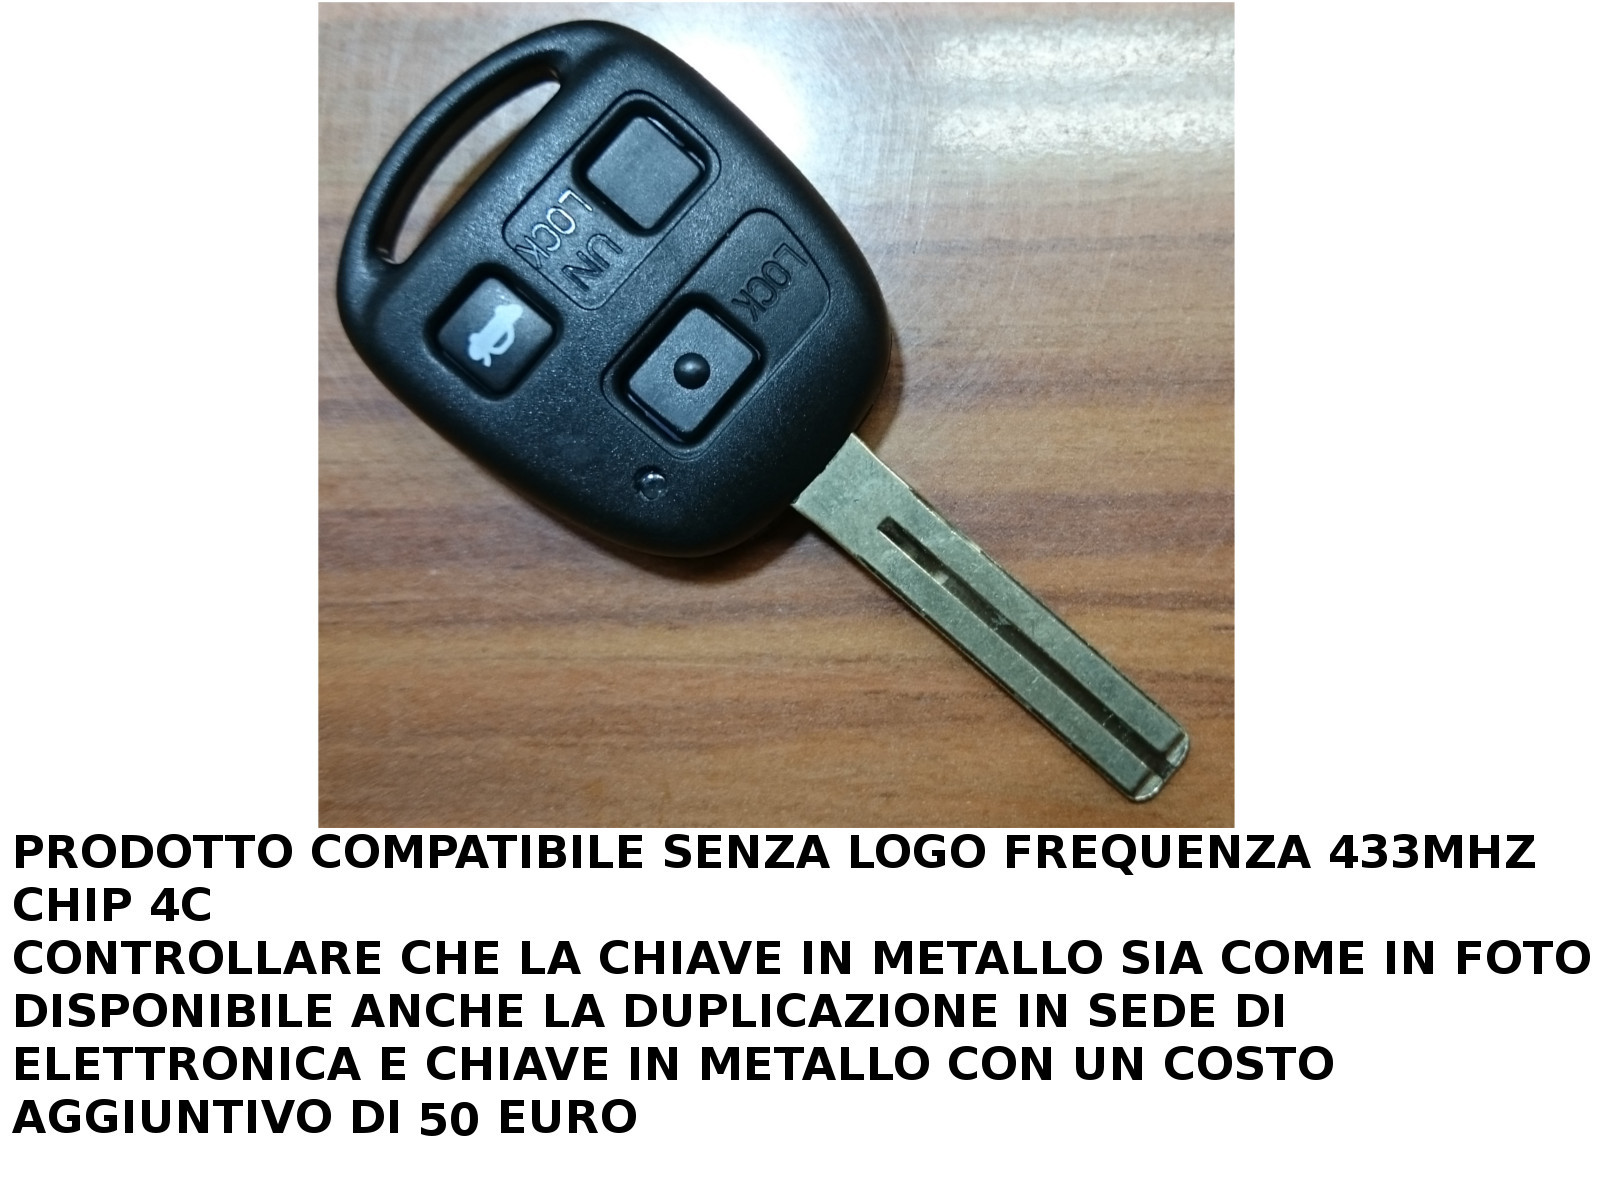 CHIAVE TELECOMANDO 433MHZ CON CHIP 4C COMPATIBILE CON LEXUS GS GX IS RX DISPONIBILE DUPLICAZIONE IN SEDE